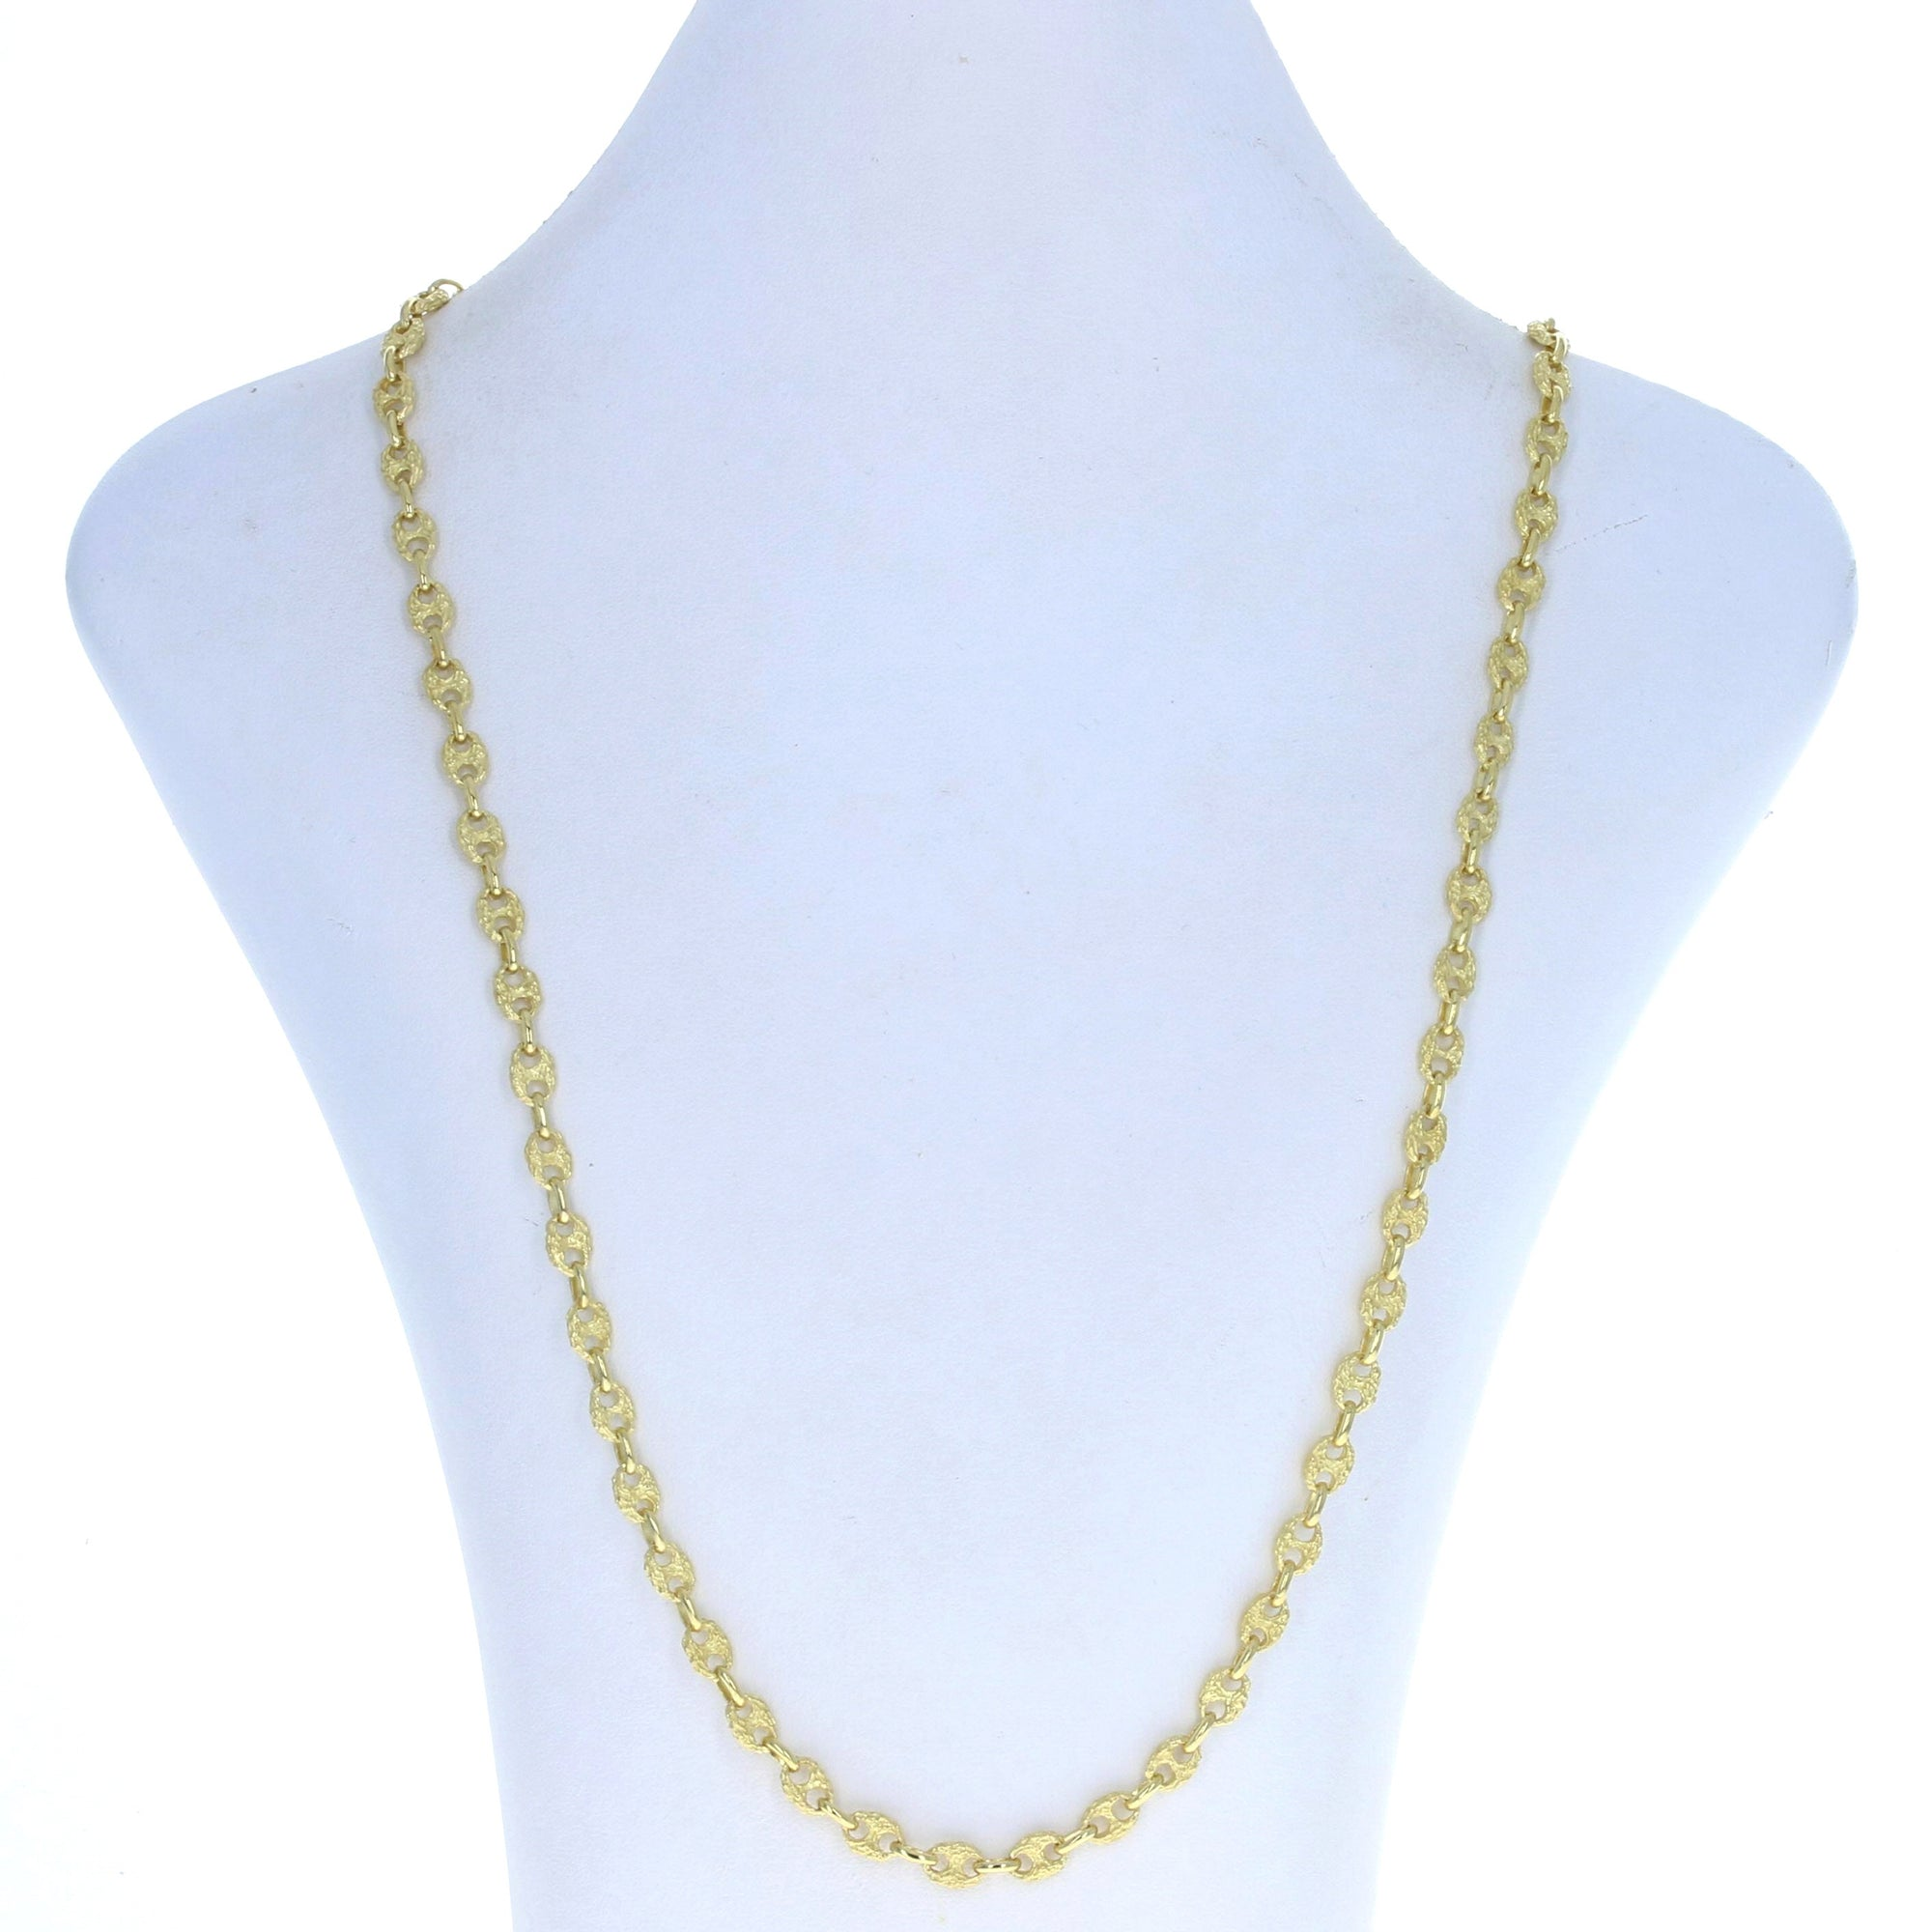 Gucci Link Chain Necklace Yellow Gold